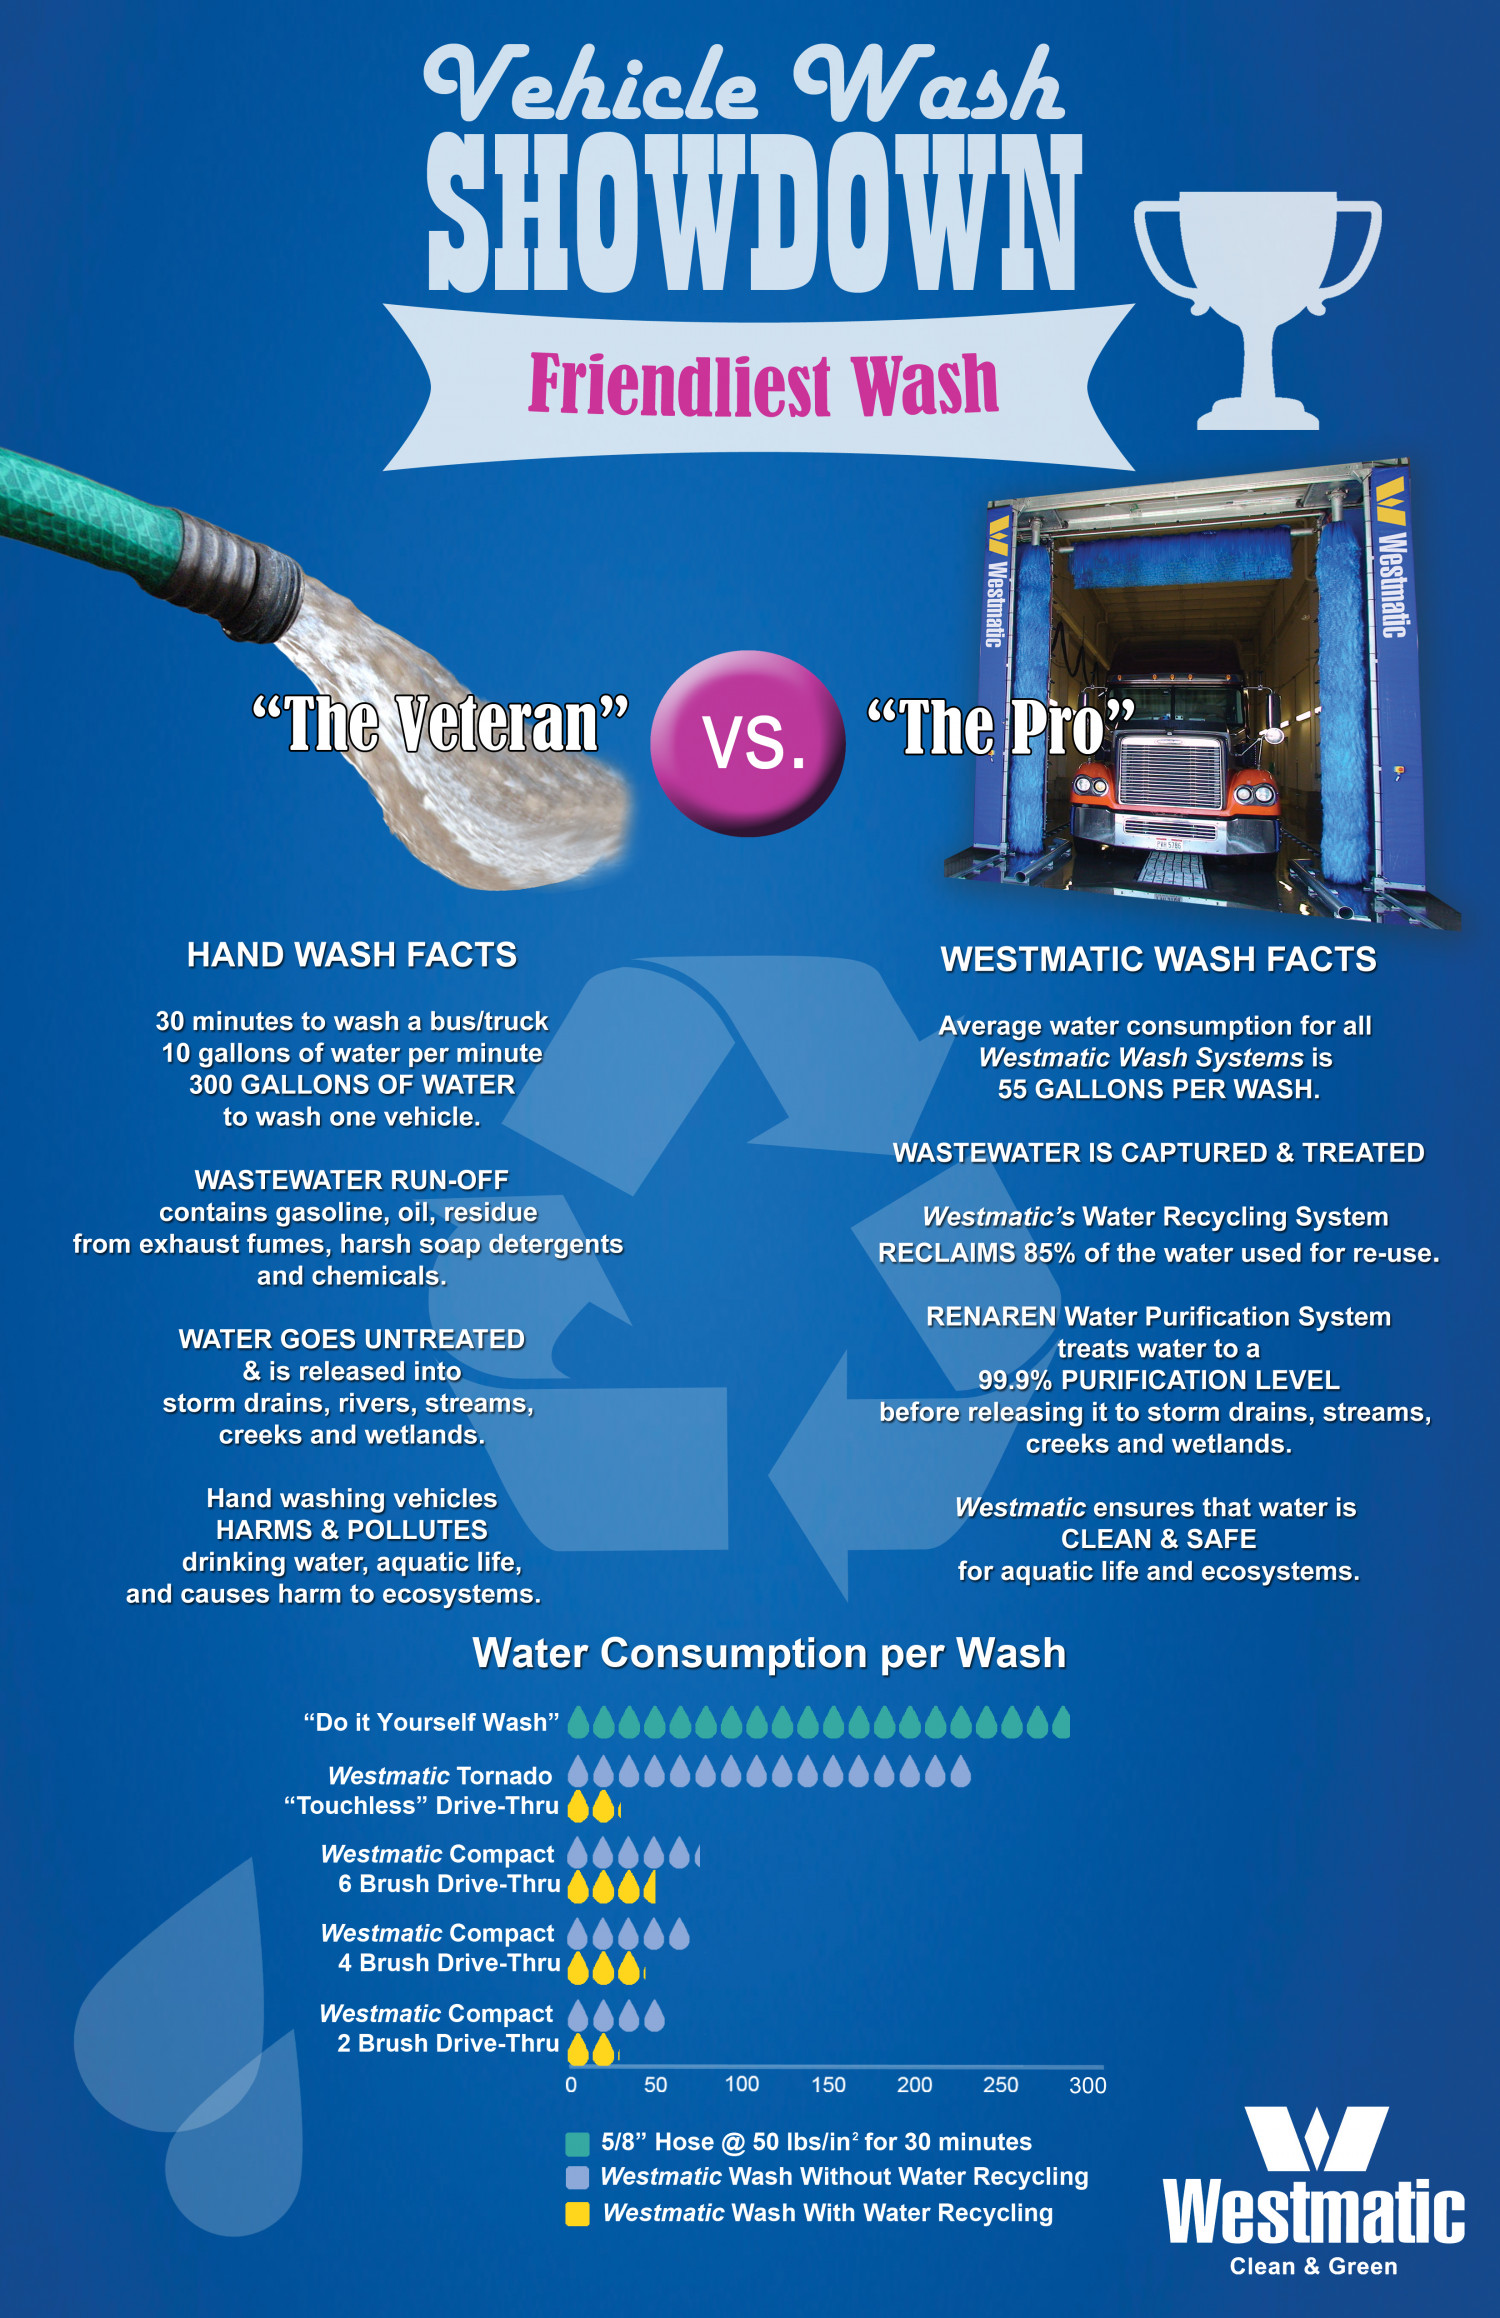 Vehicle Wash Showdown Infographic